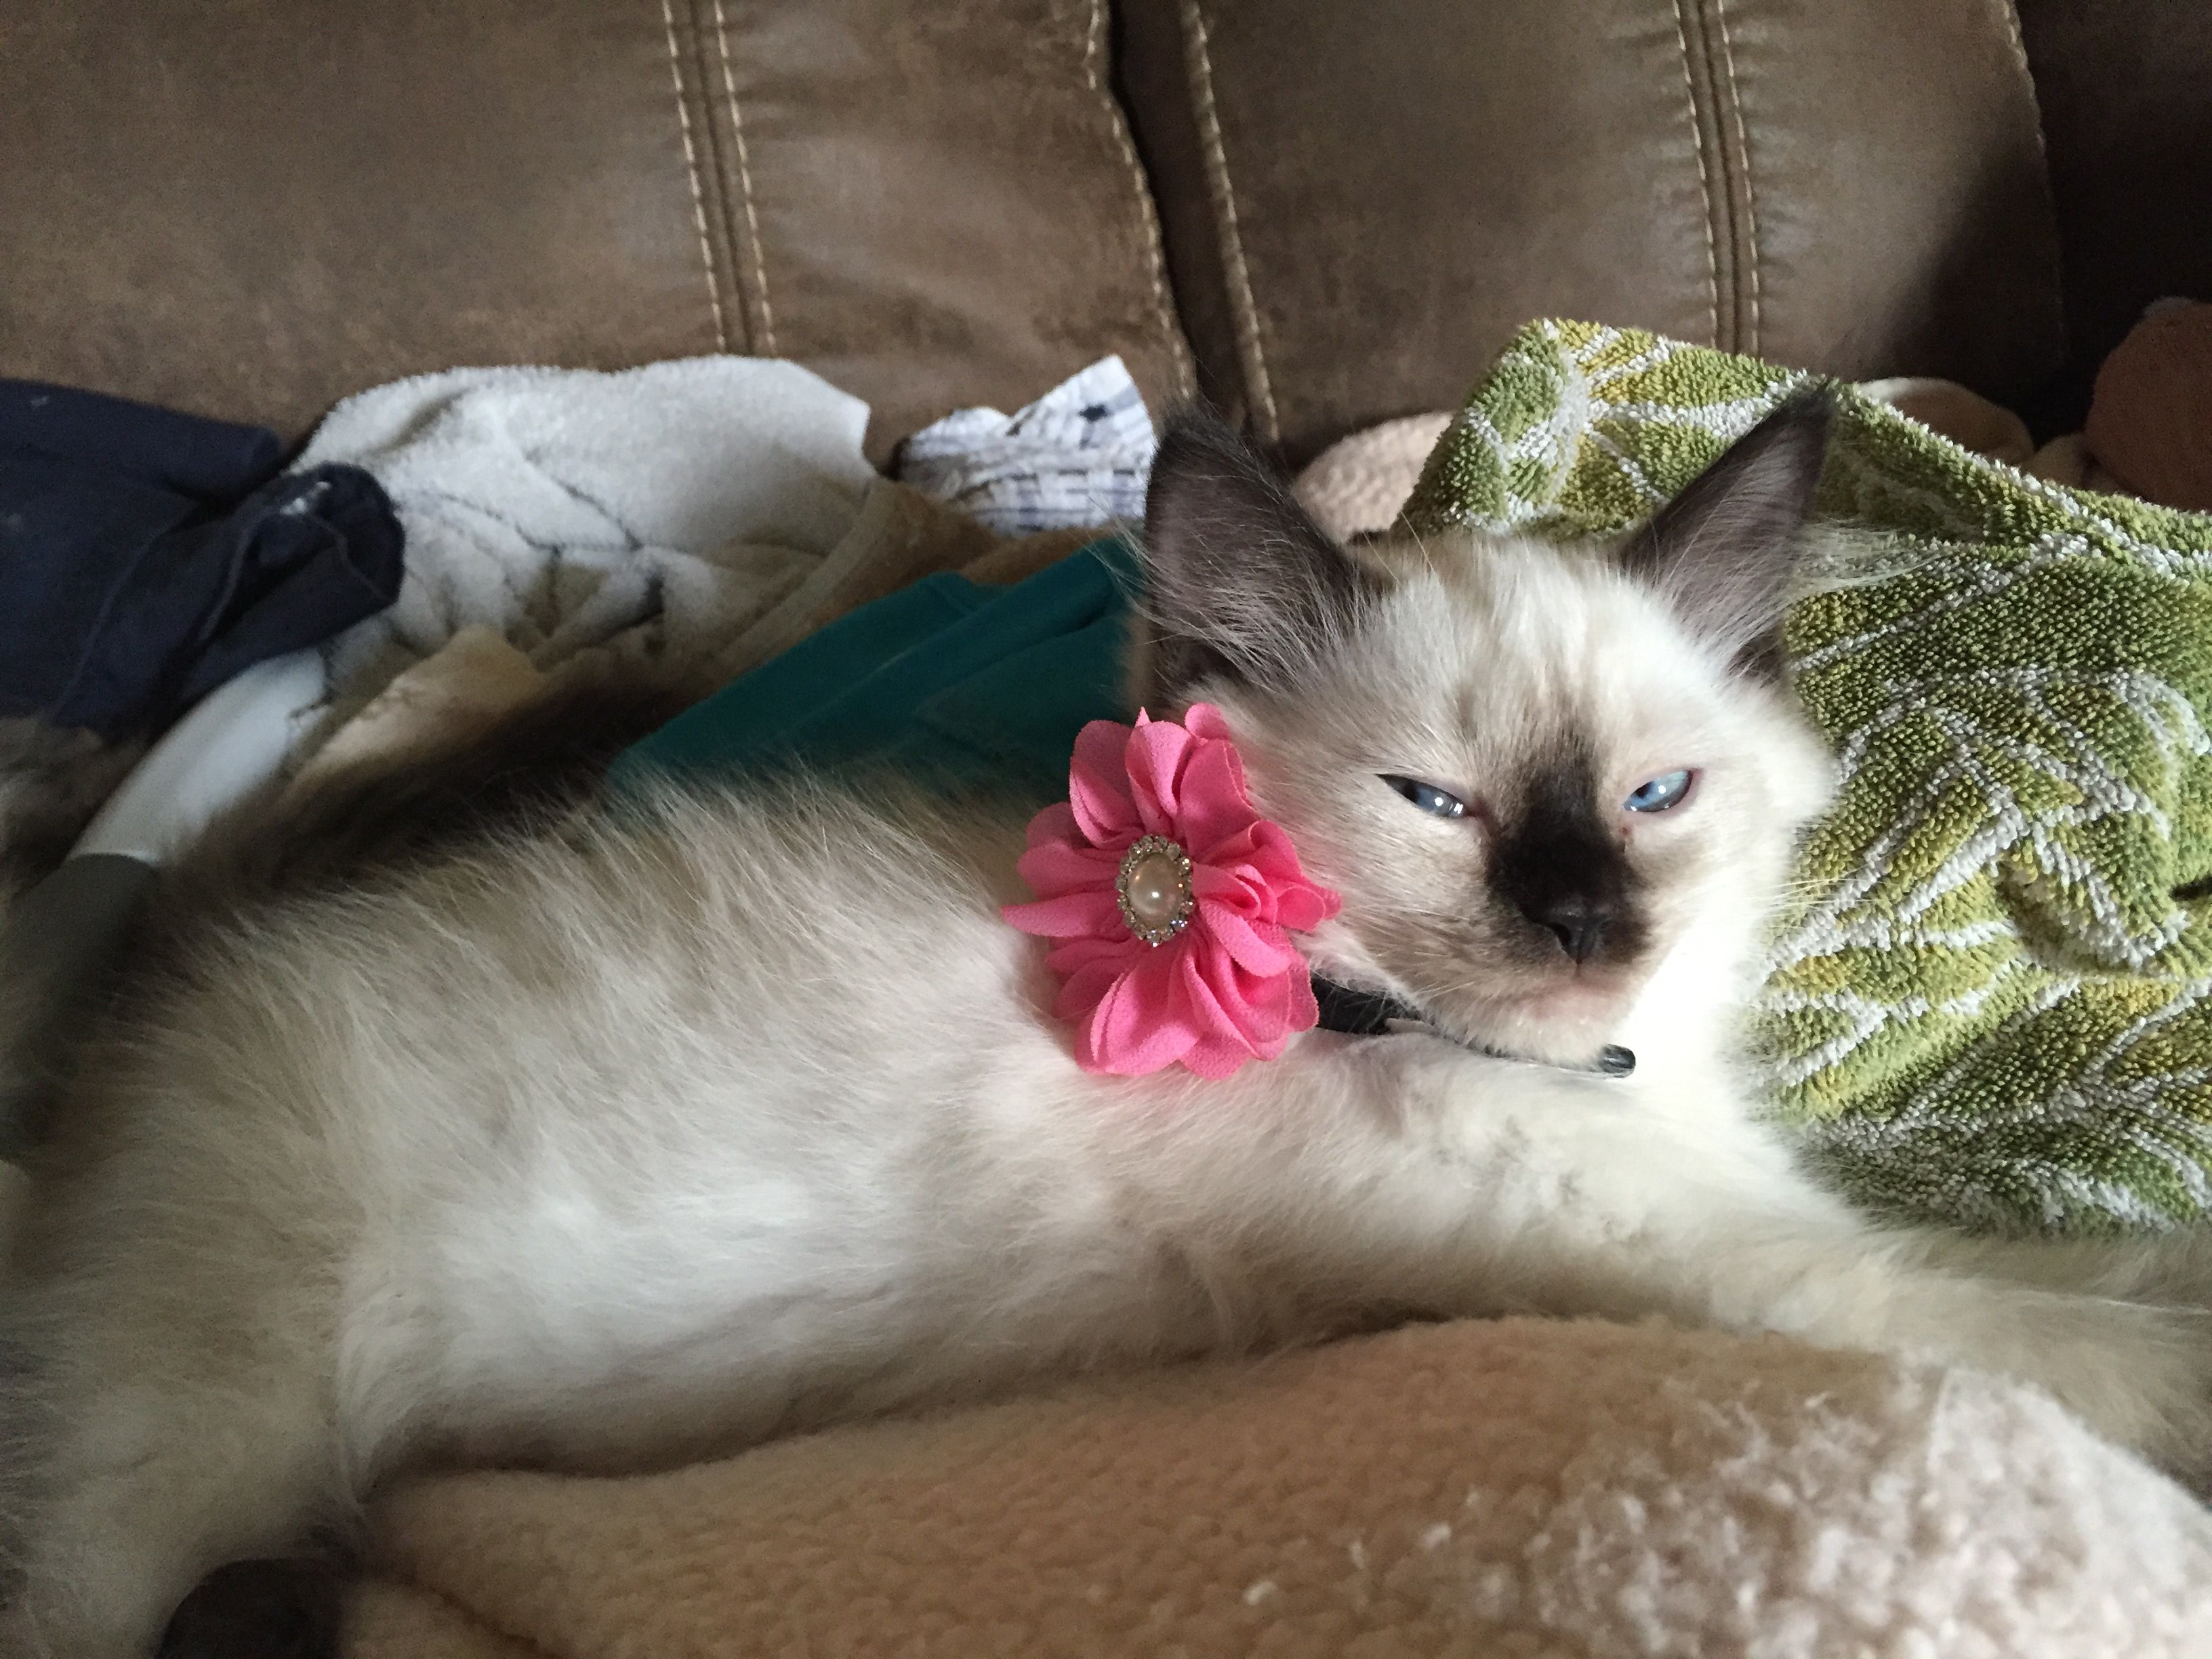 Screensaver, Dolly before adoption | Ragdoll Floppy Cats ...